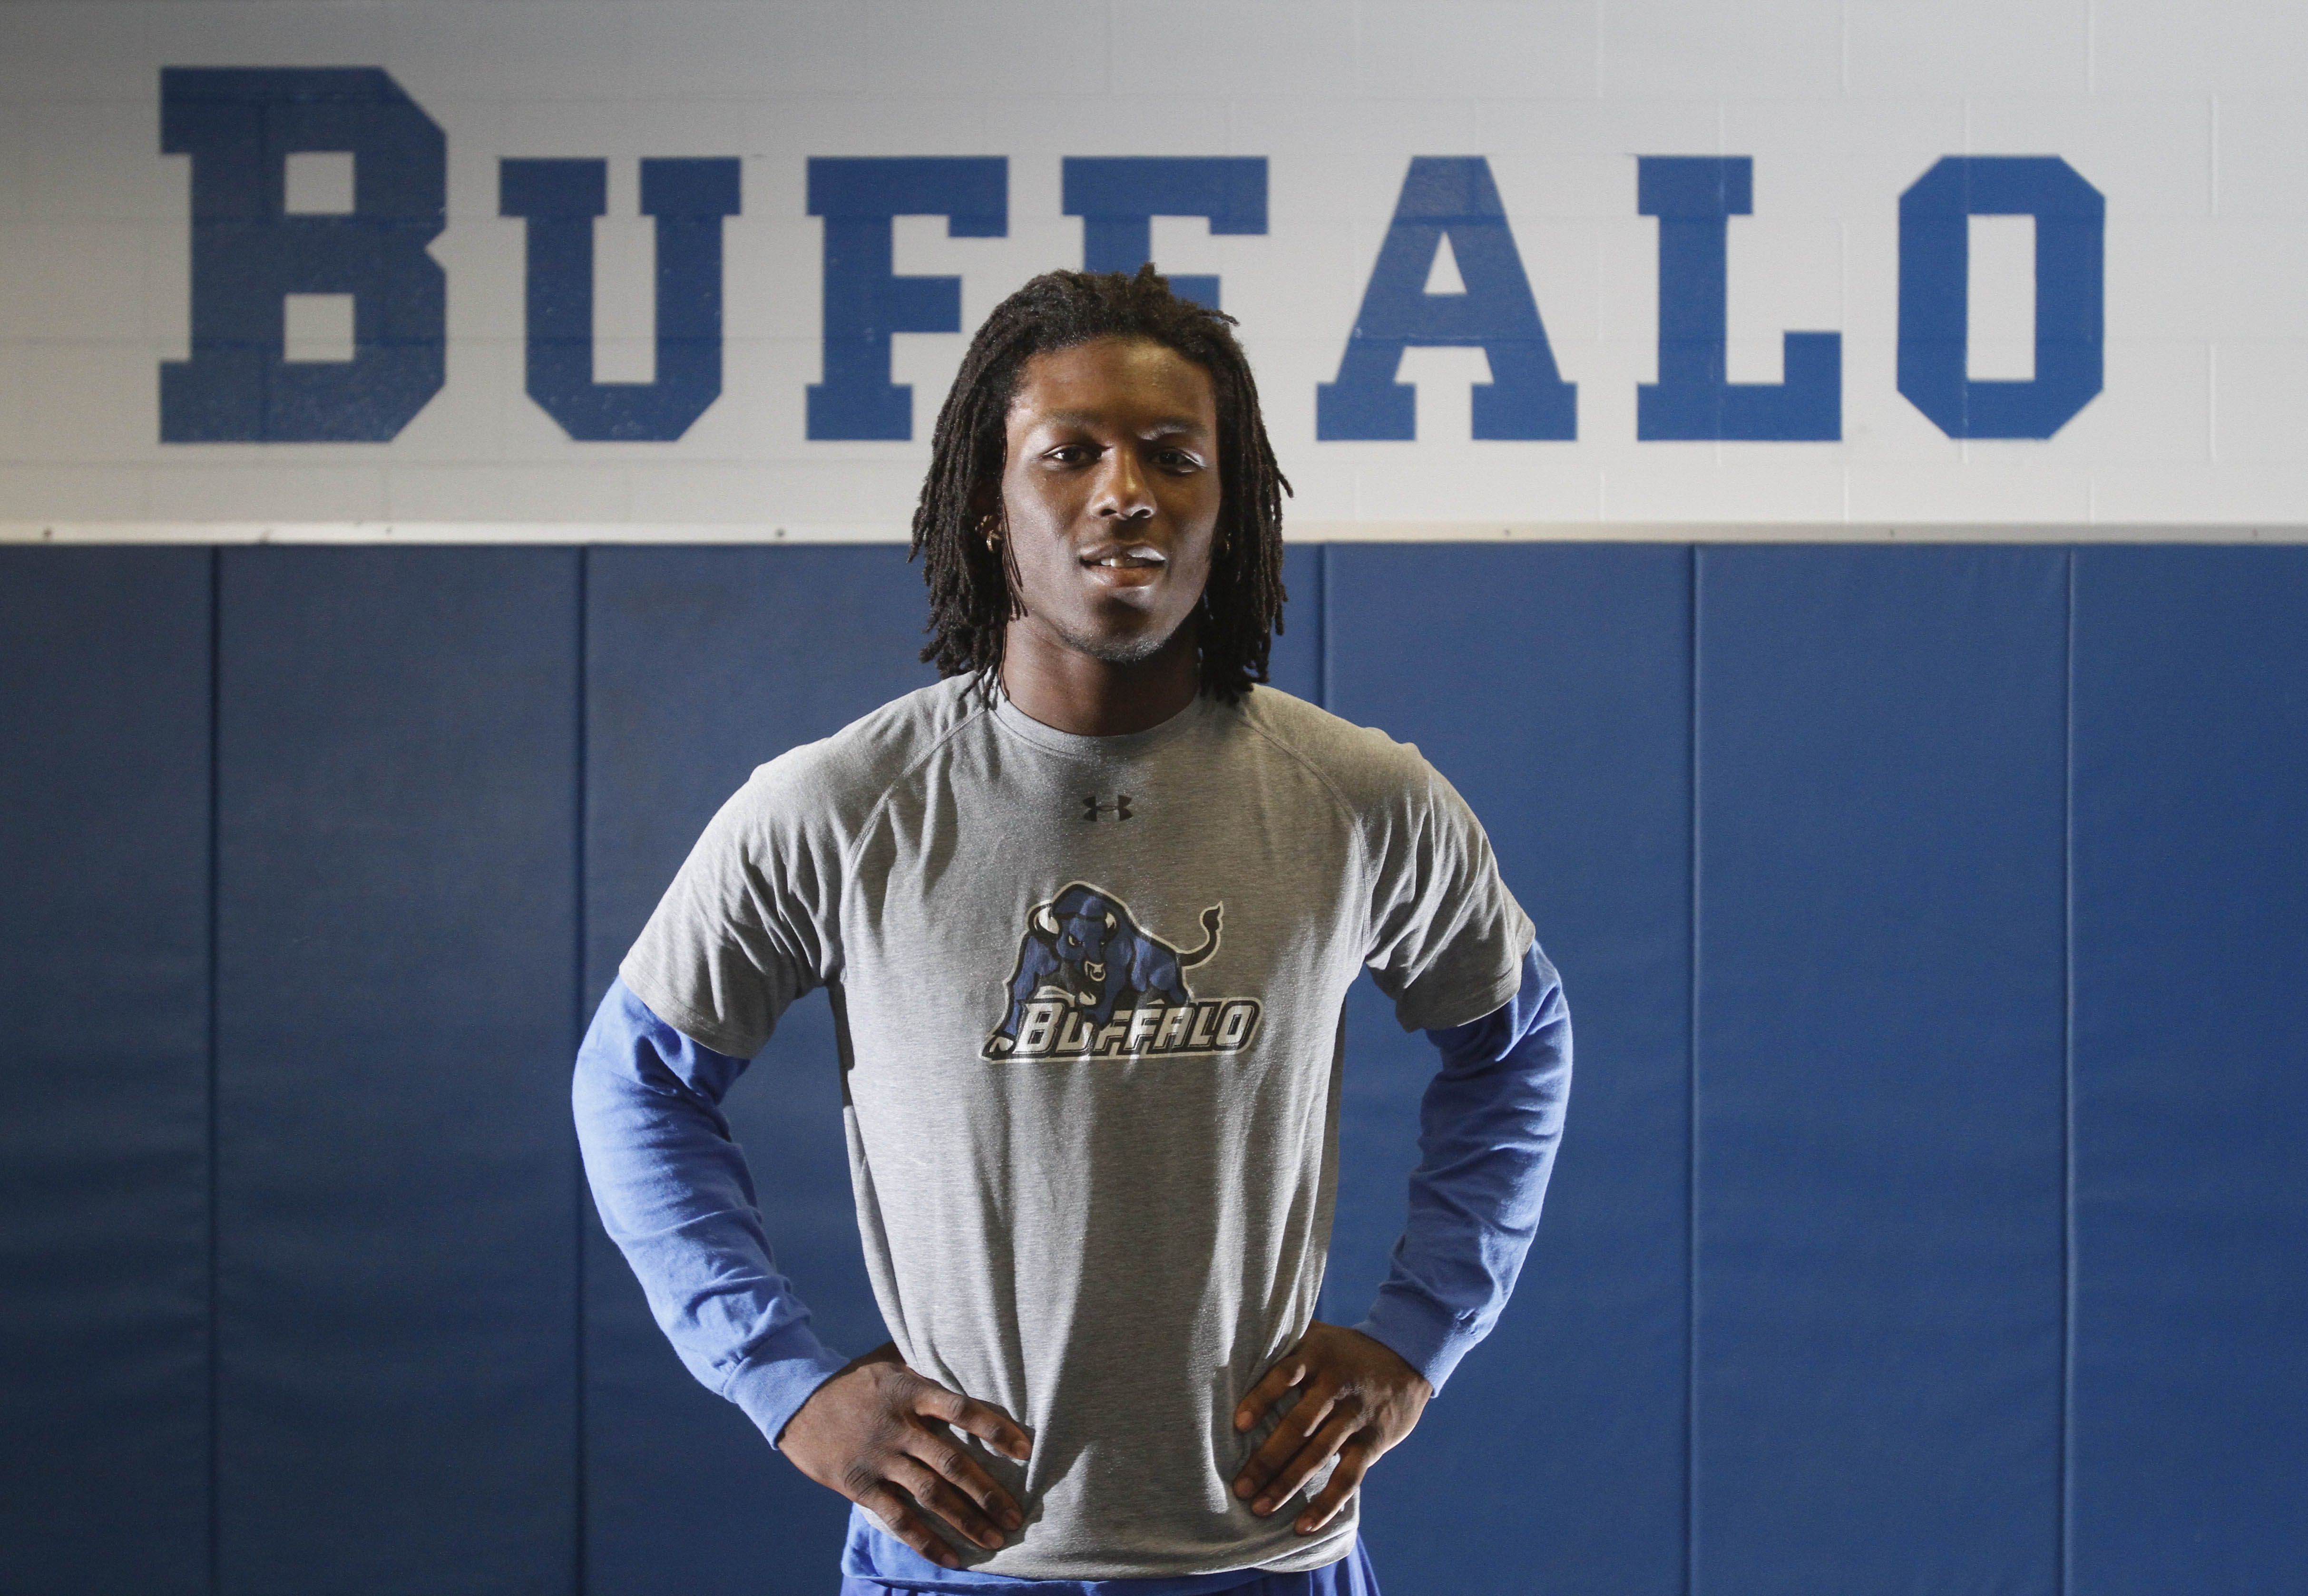 Desmond Green, shown here in 2009, was a two-time Mid-American Conference wrestling champion at 149 pounds at the University at Buffalo. (Mark Mulville/Buffalo News)